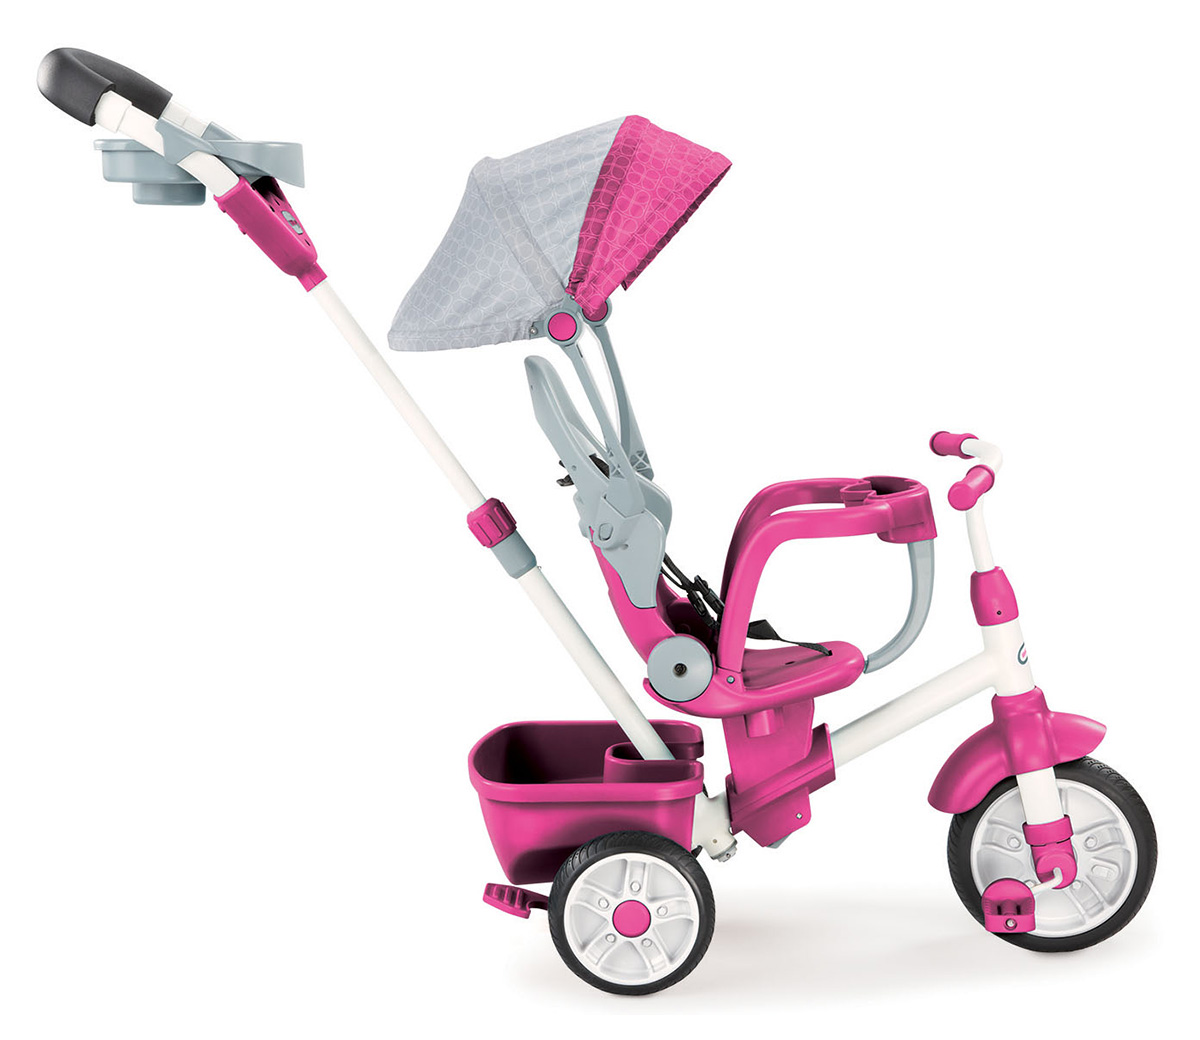 edfd9589f92 Perfect Fit 4-in-1 Trike (Pink) | Little Tikes ™